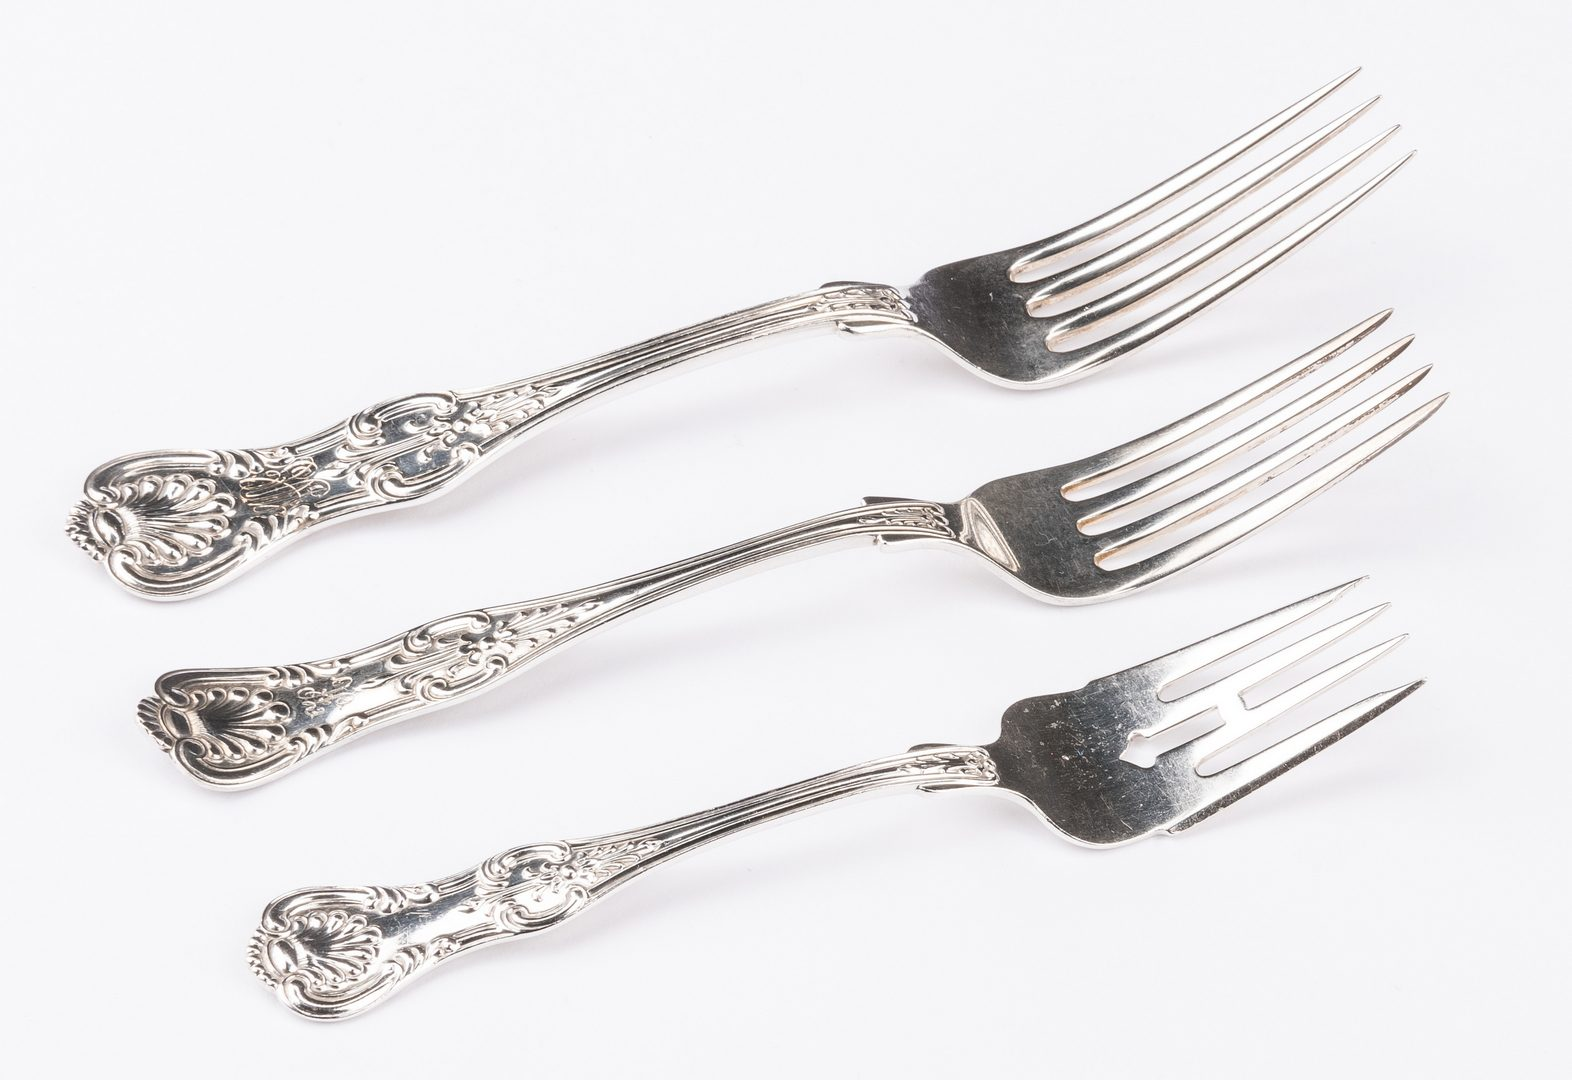 Lot 68: Dominick Haff New King/King Sterling Flatware